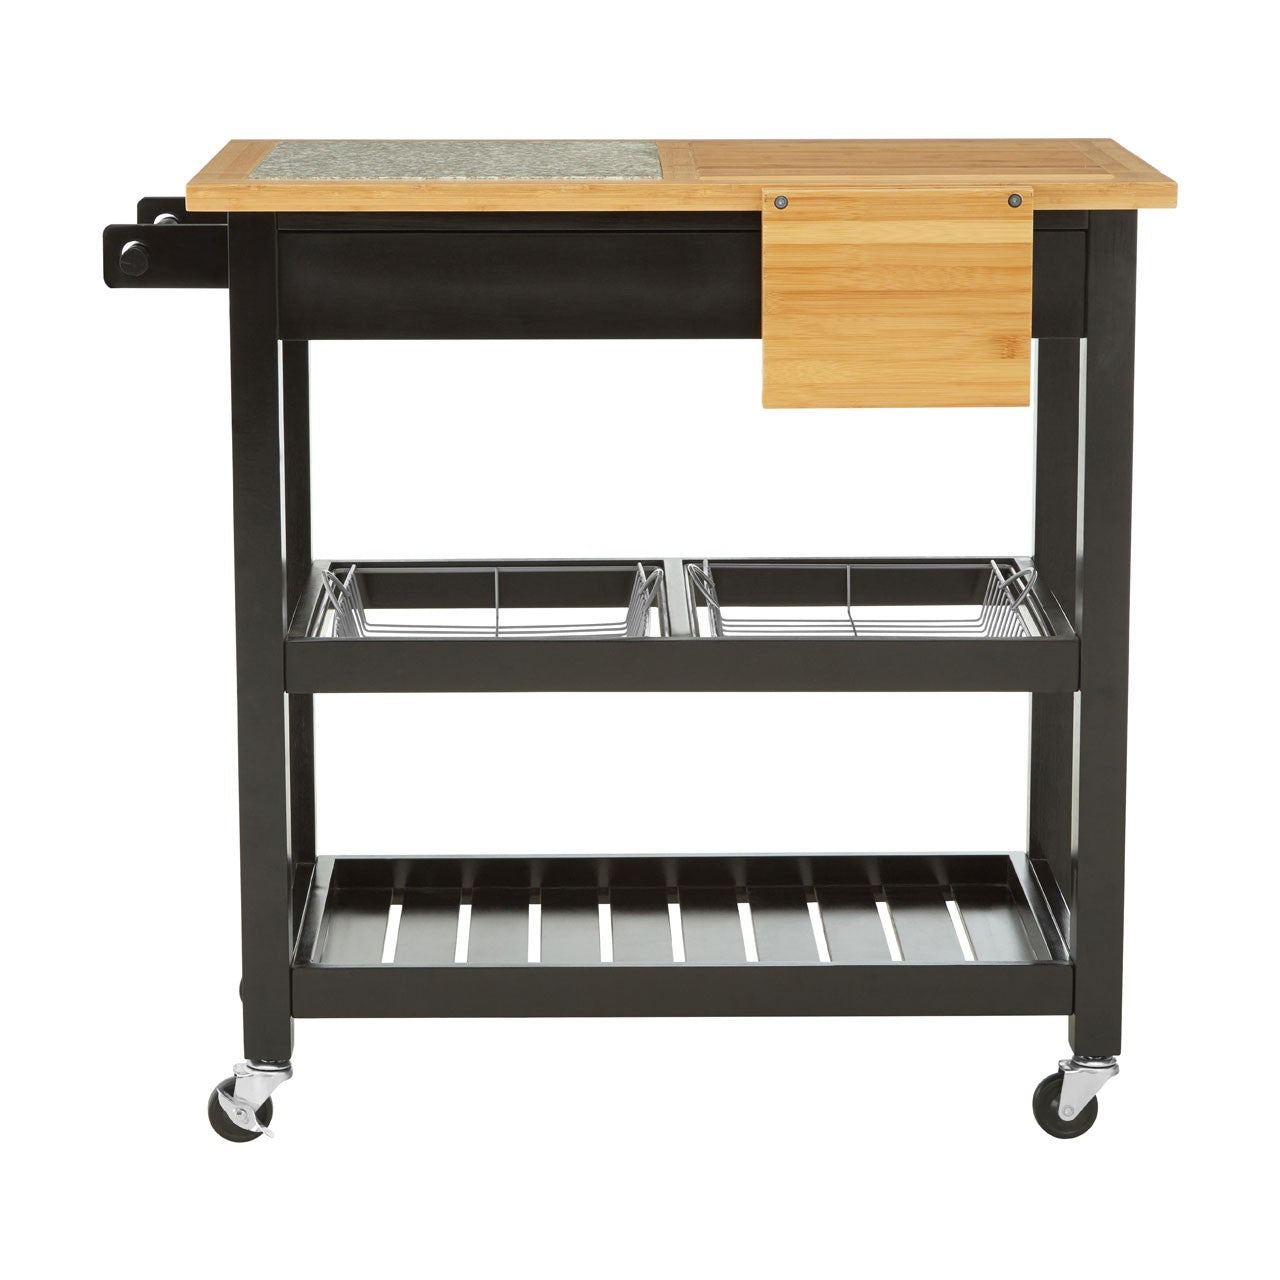 Kitchen Trolley in Pine